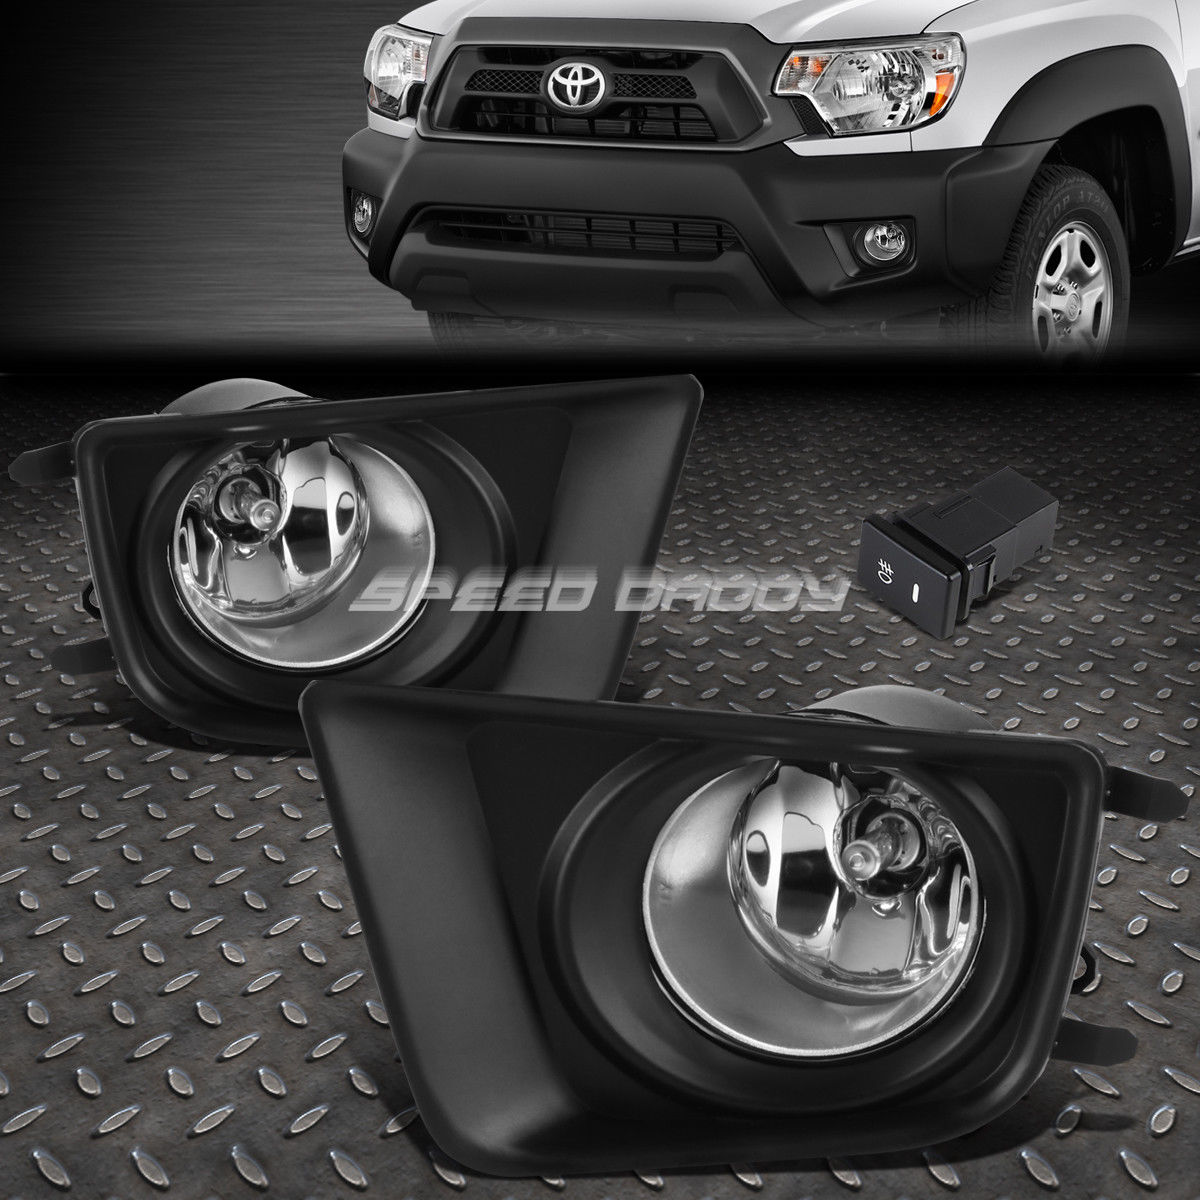 USフォグライト FOR TACOMA 12-15 TOYOTA TACOMA FOG + CHROME LENS OE BUMPER FOG LIGHT LAMP PAIR+SWITCH KIT 12-15 TOYOTA TACOMA CHROMEレンズOE BUMPER FOG LIGHT LAMP PAIR + SWITCH KIT, カラスチョウ:01d35ced --- diadrasis.net